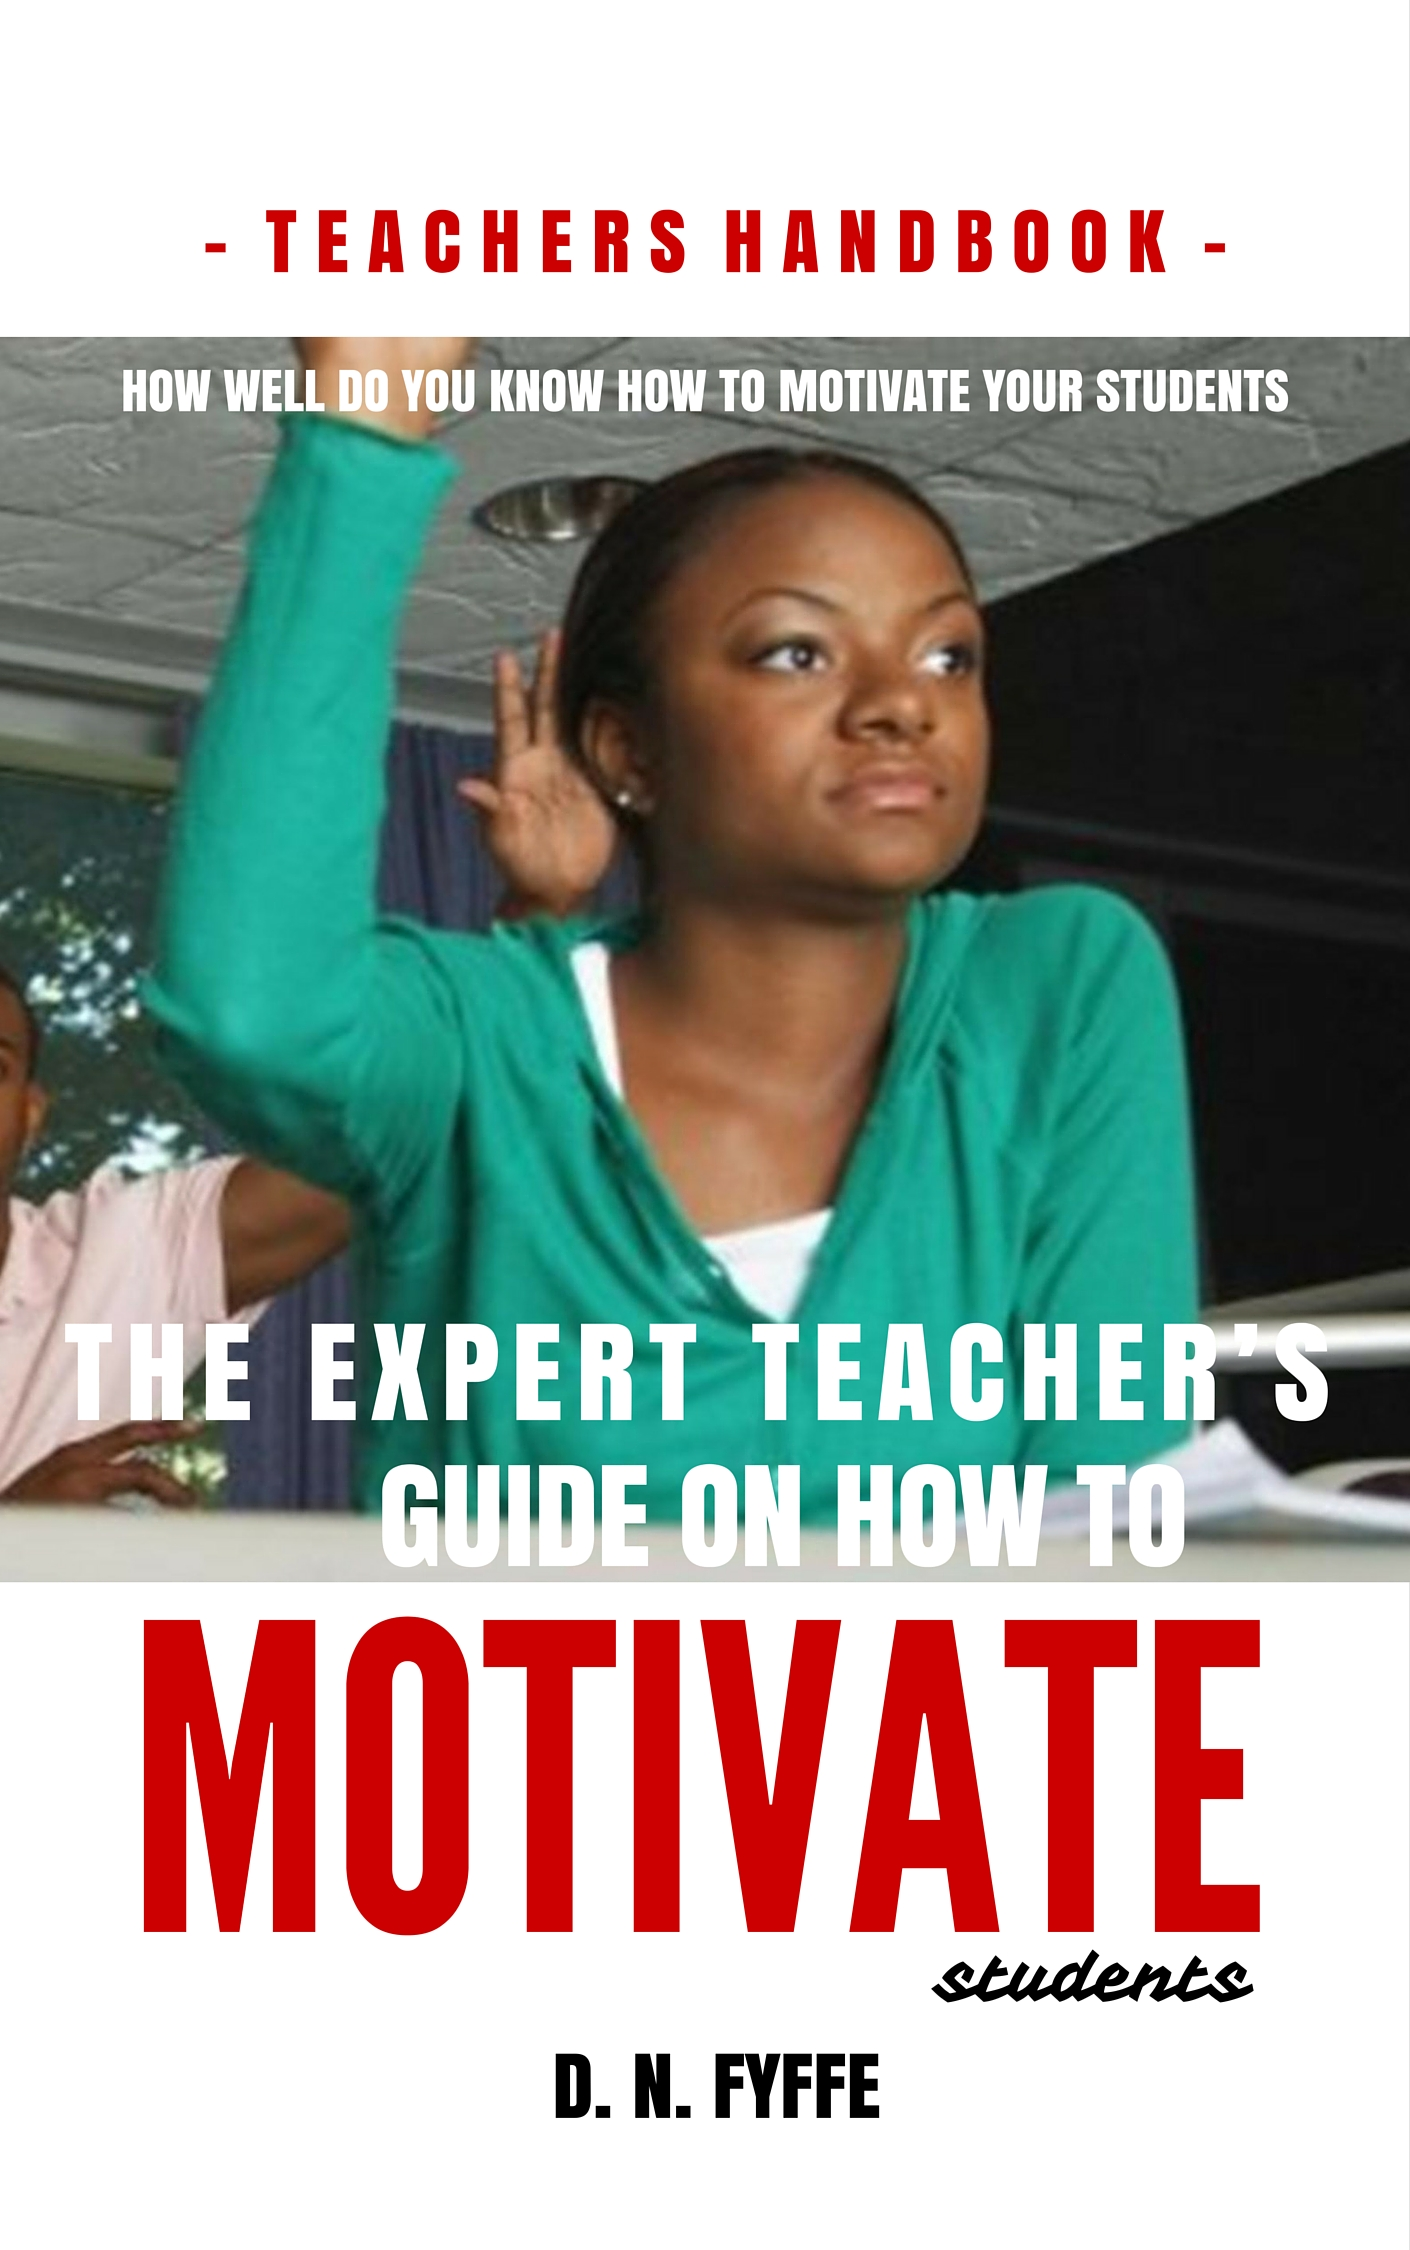 Book Excerpt: The Expert Teacher's Guide on How to Motivate Students by Denise N. Fyffe